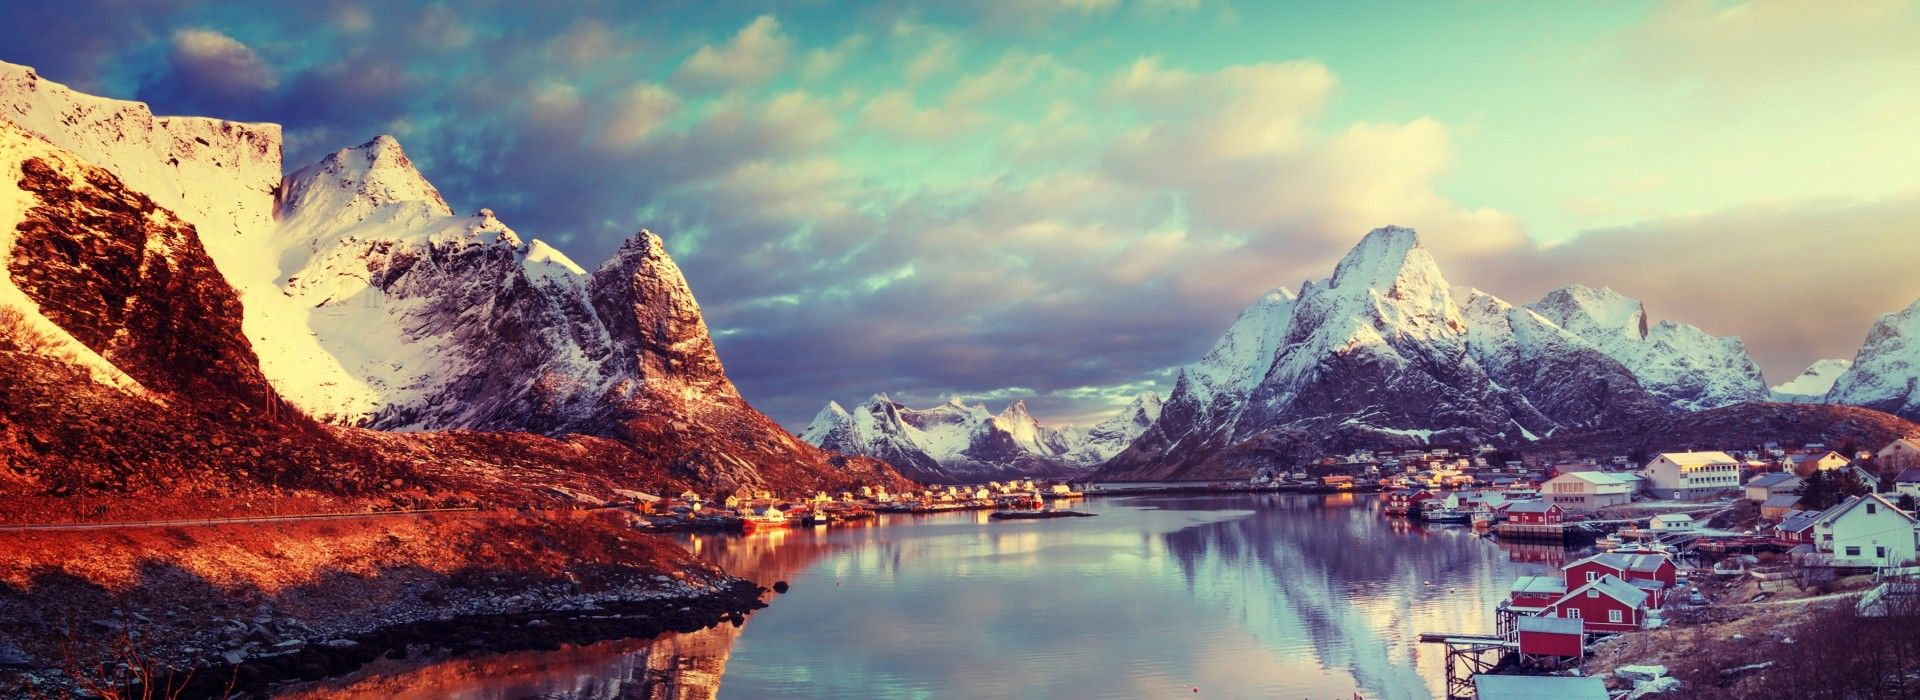 Boat tours, water sports and marine wildlife in Norway